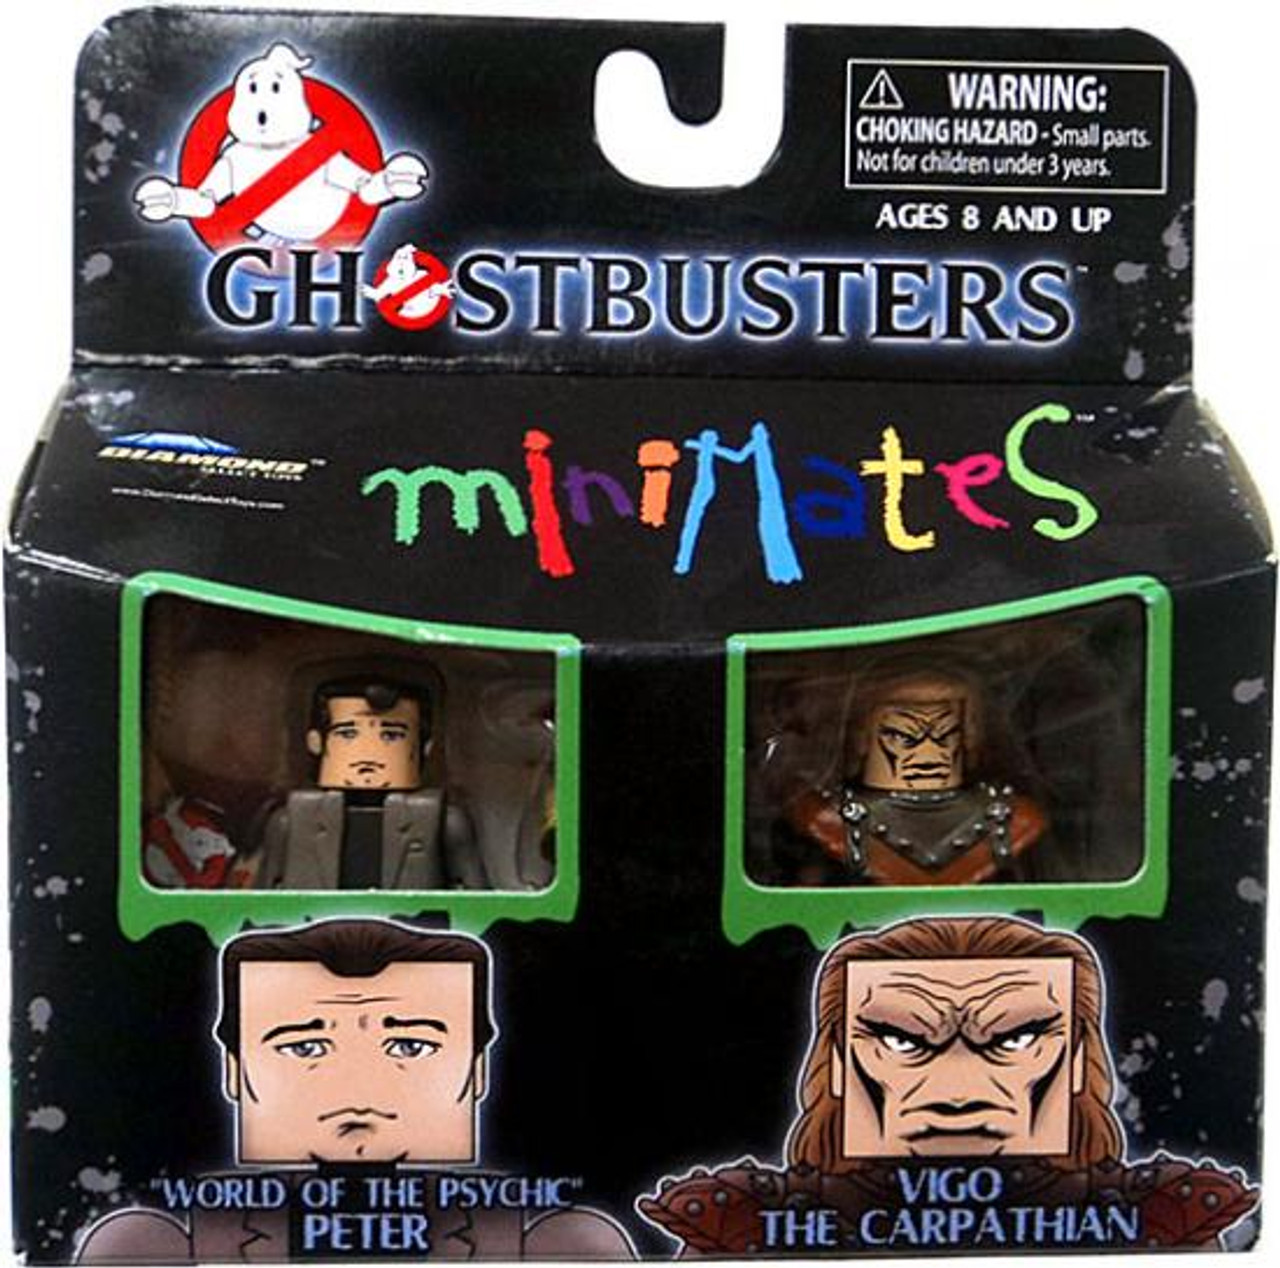 "Ghostbusters II Minimates ""World Of The Psychic"" Peter & Vigo The Carpathian Minifigure 2-Pack"